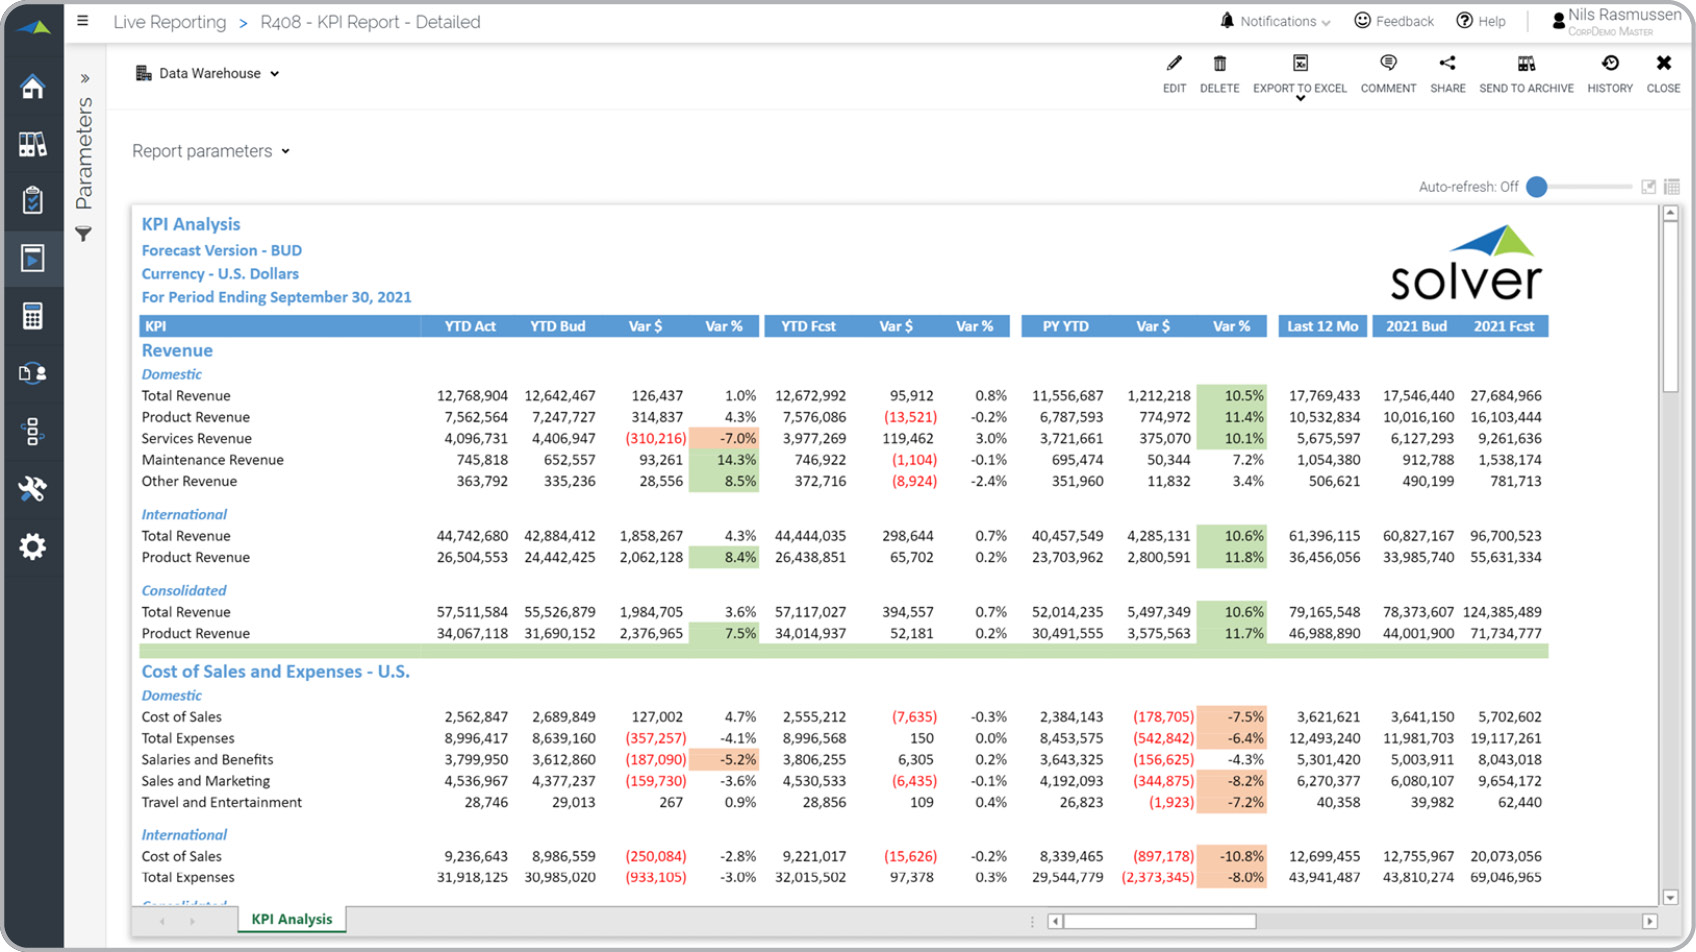 Detailed KPI Variance Report